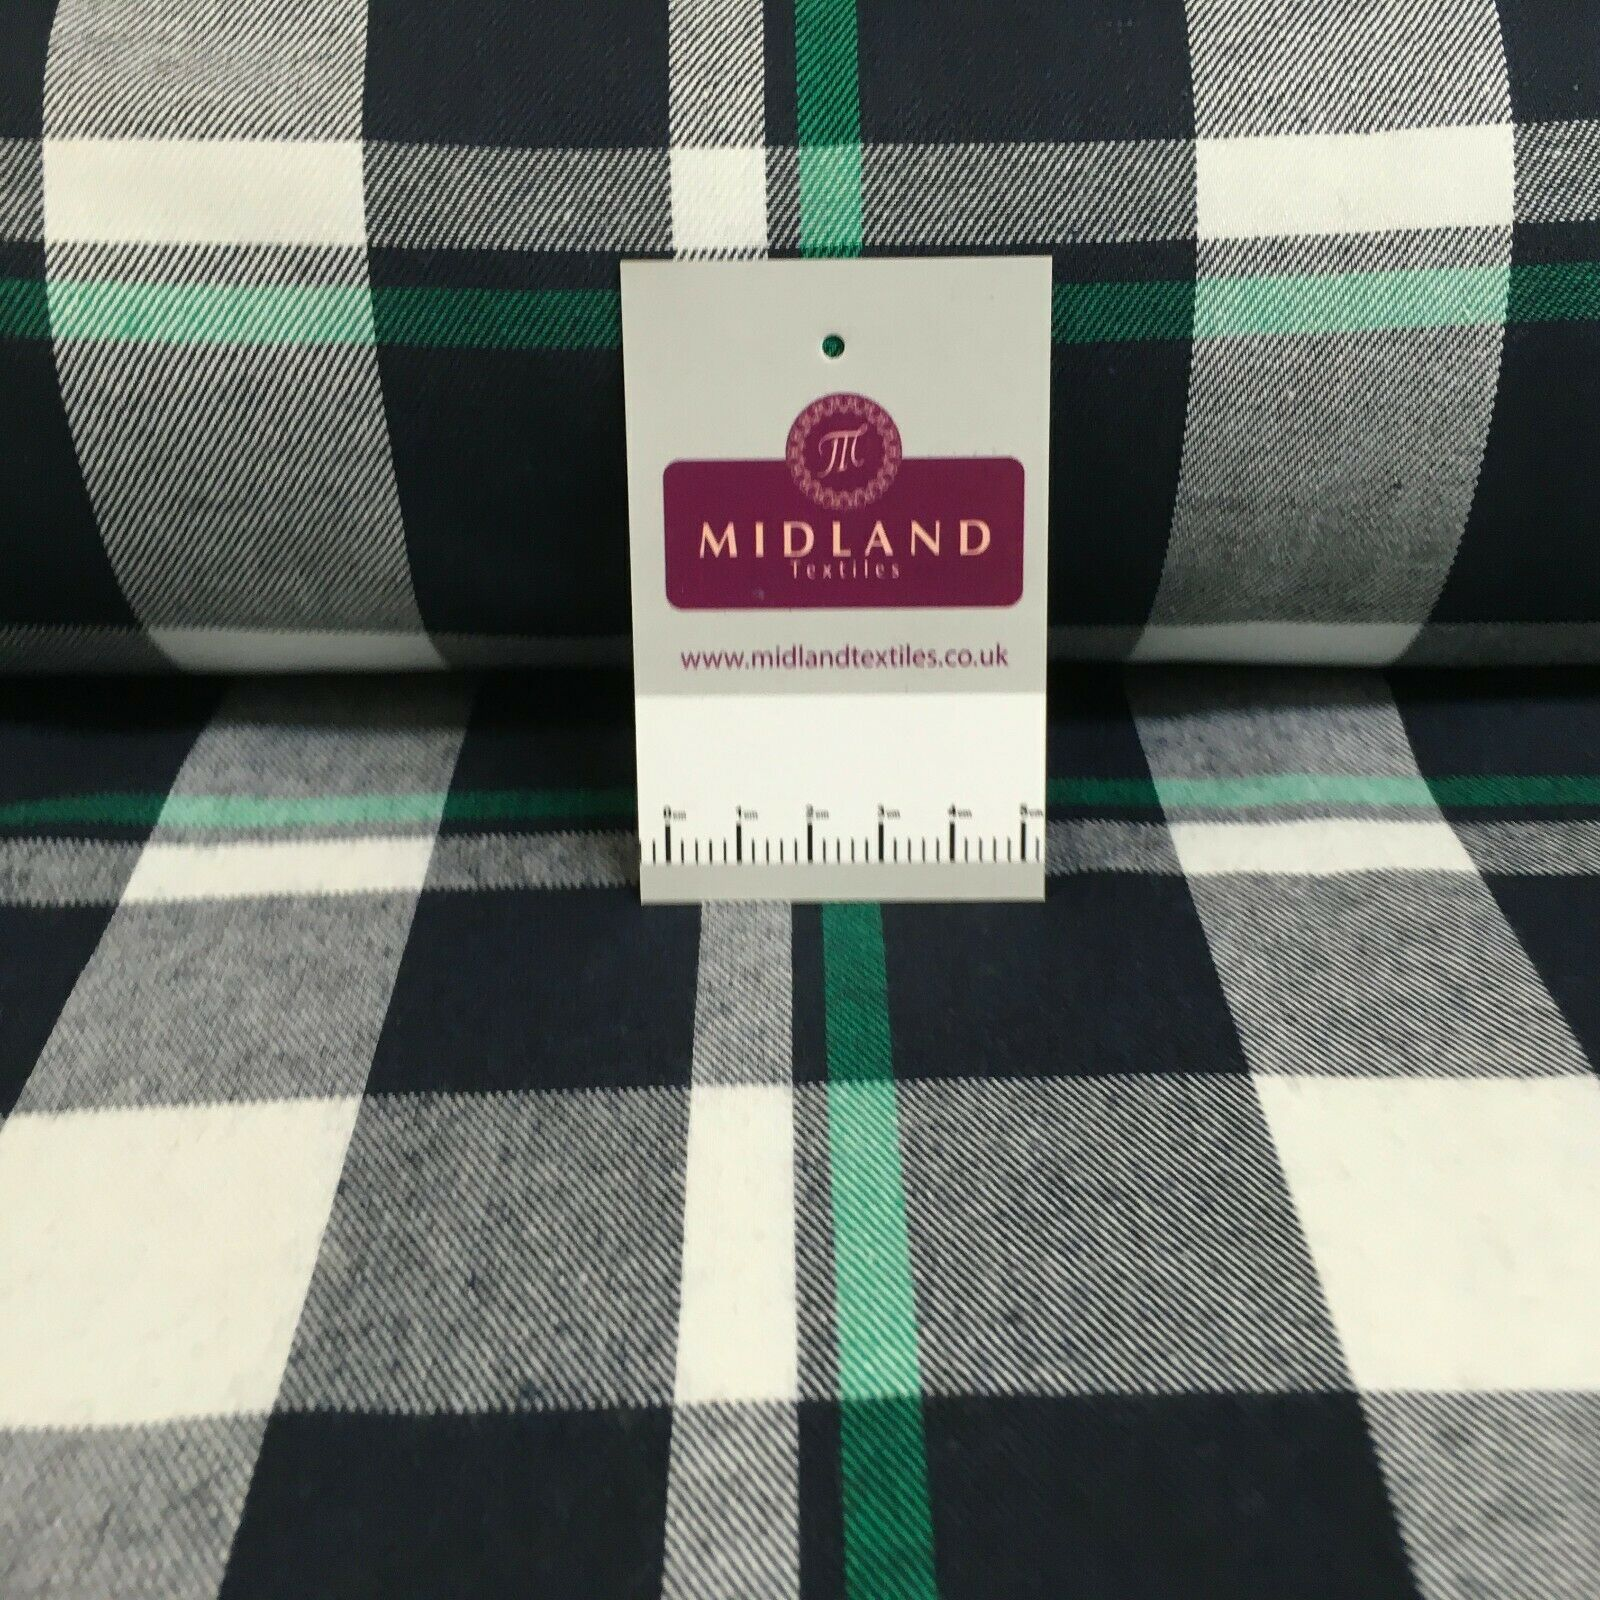 Green Navy cotton twill tartan check dress Fabric M1437